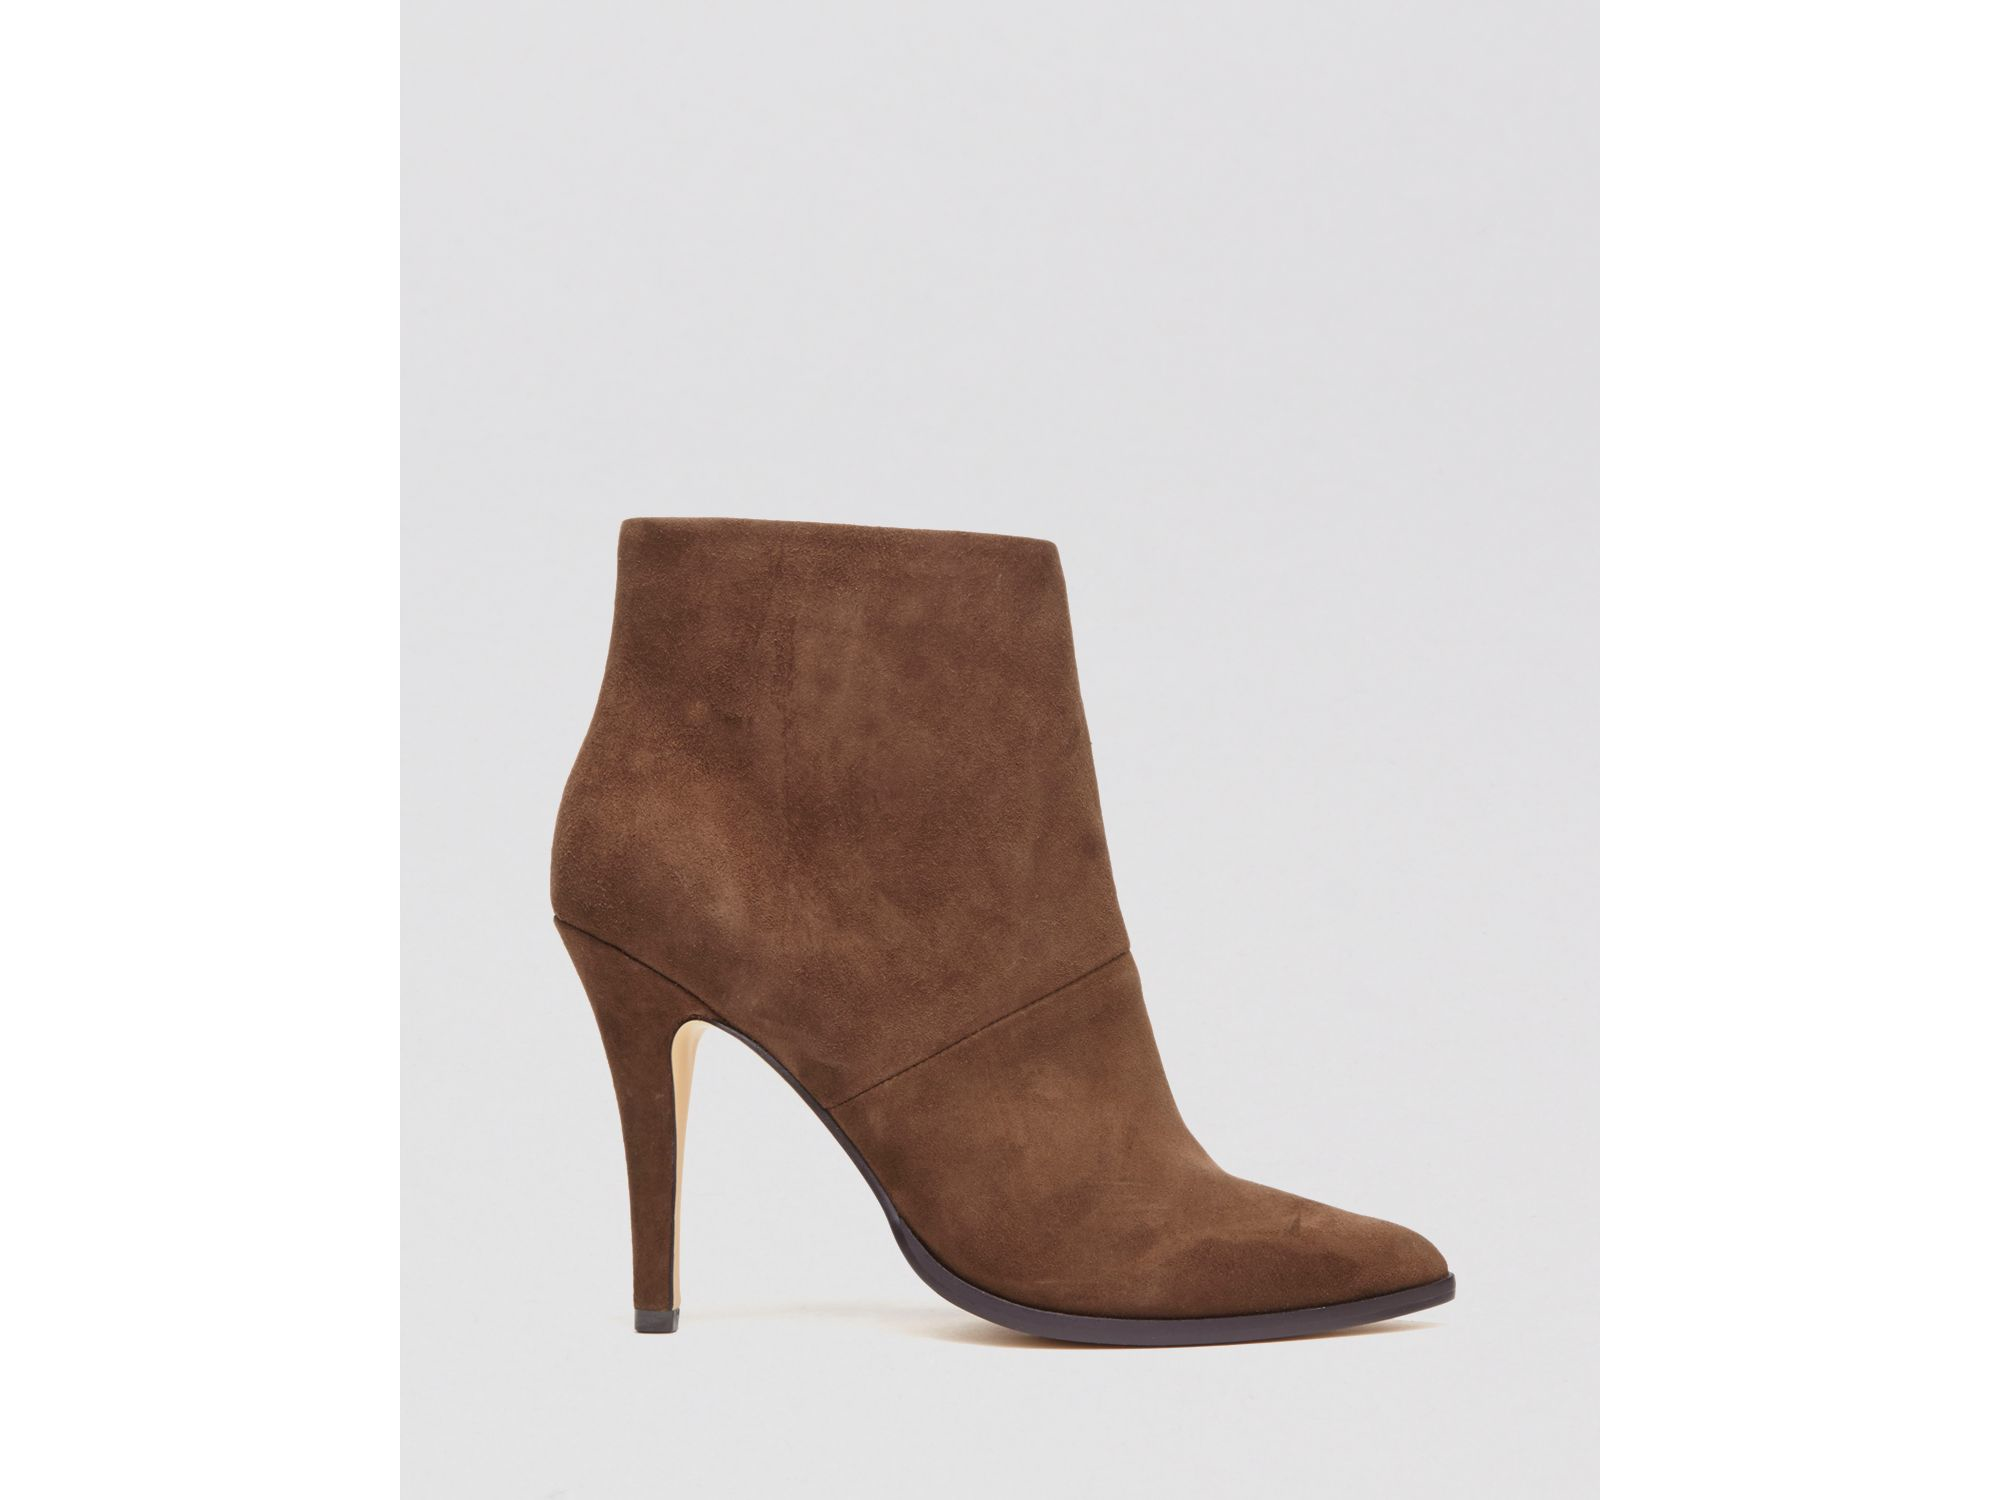 1dd74bab0 Lyst - DV by Dolce Vita Pointed Toe Booties - Katin High Heel in Brown